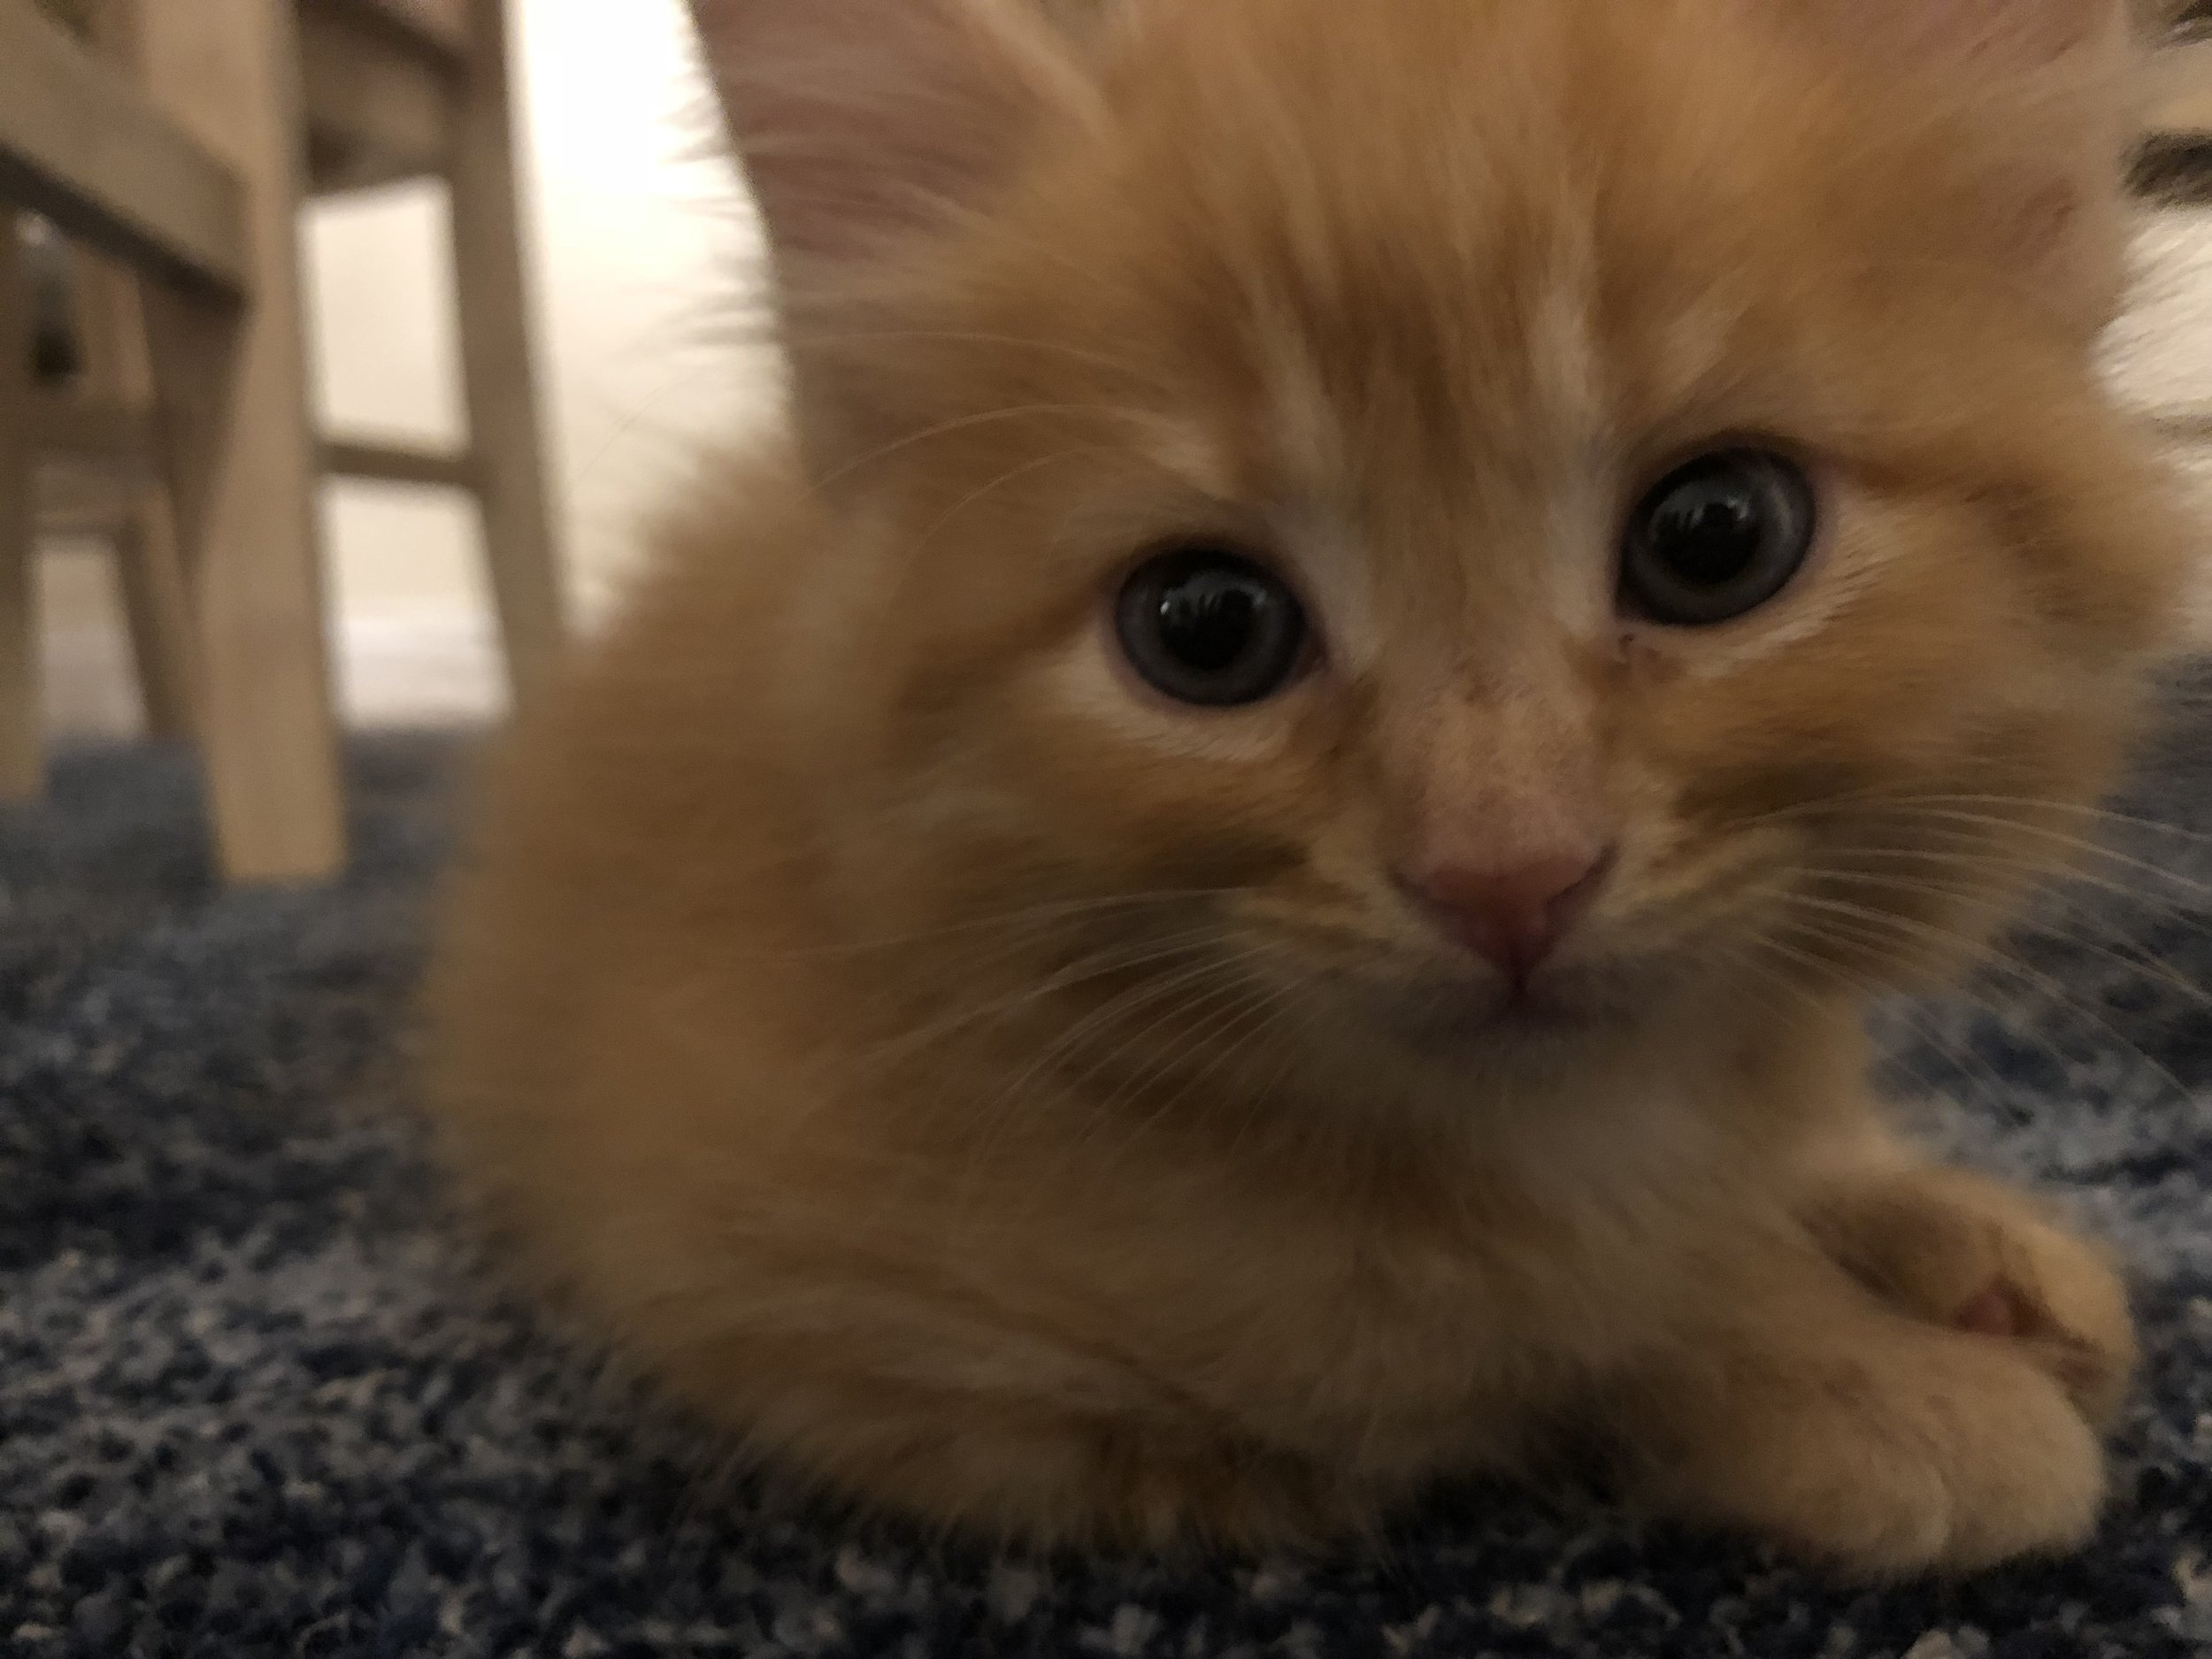 Our little Ginger Snippsy Buttons as a kitten. (That's what Hadassah calls her.)